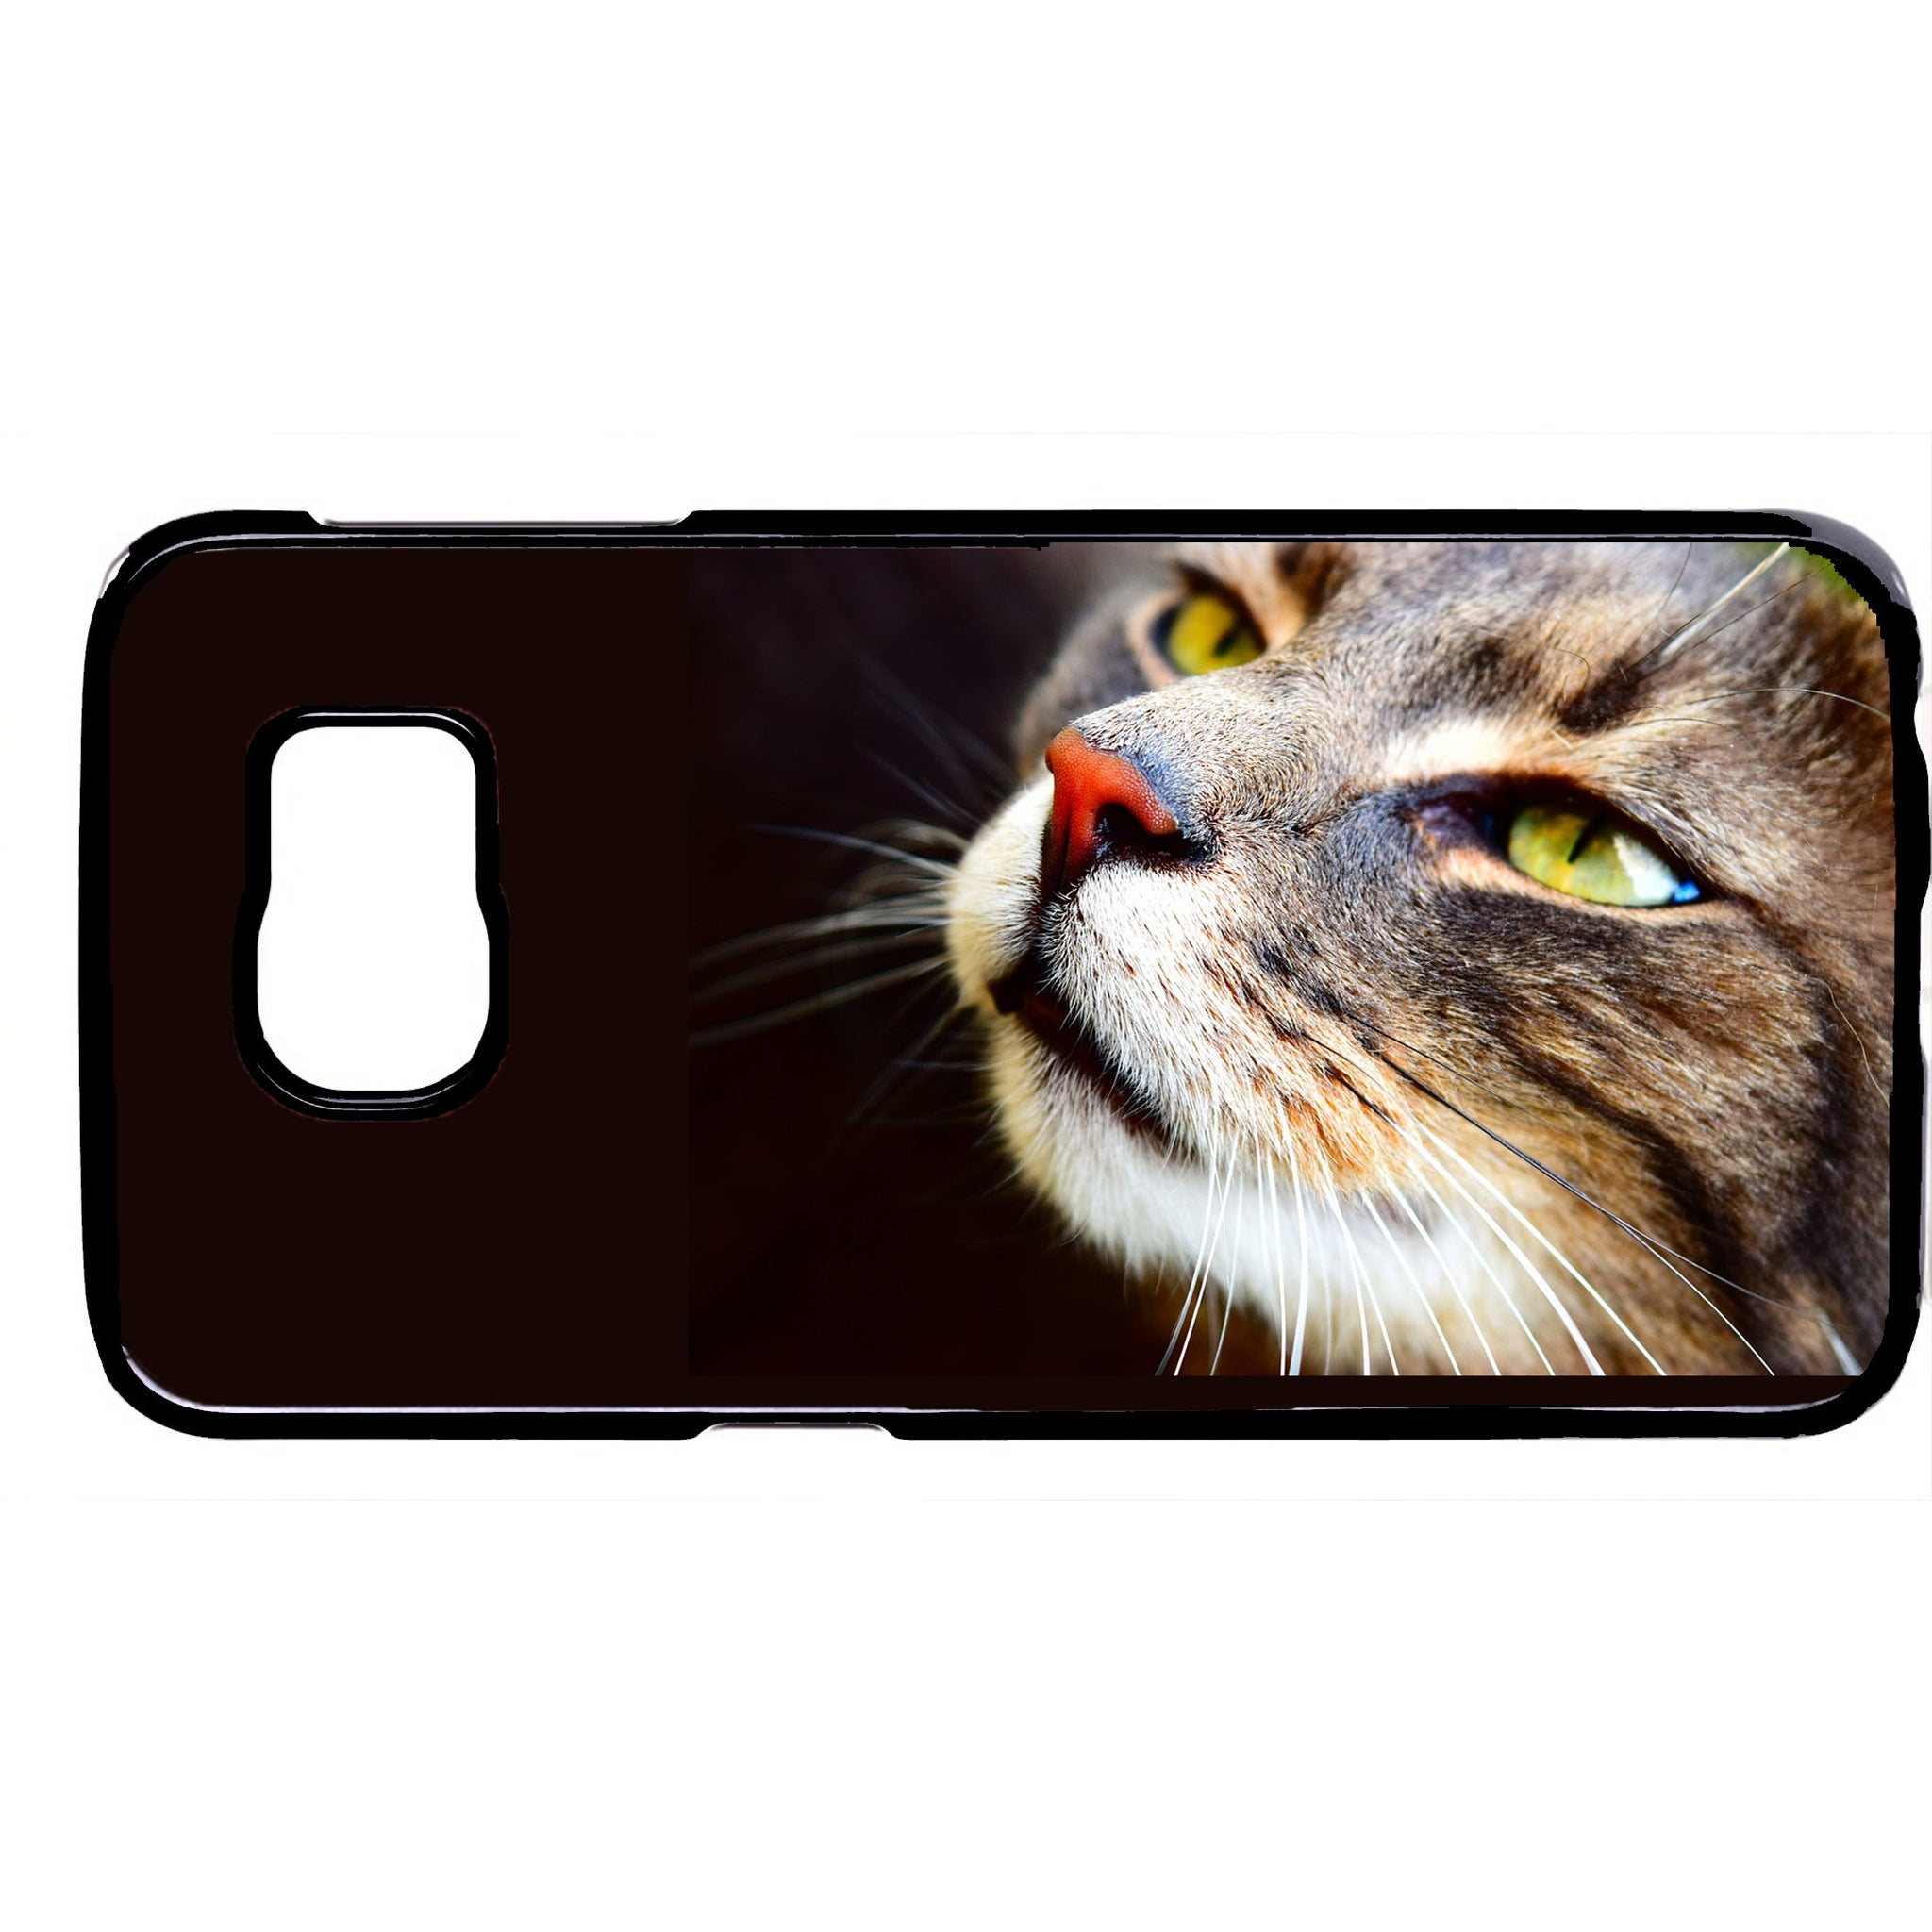 Cute Cat Face Kitty Kitten Pet Rubber Case Cover For Samsung Galaxy Note